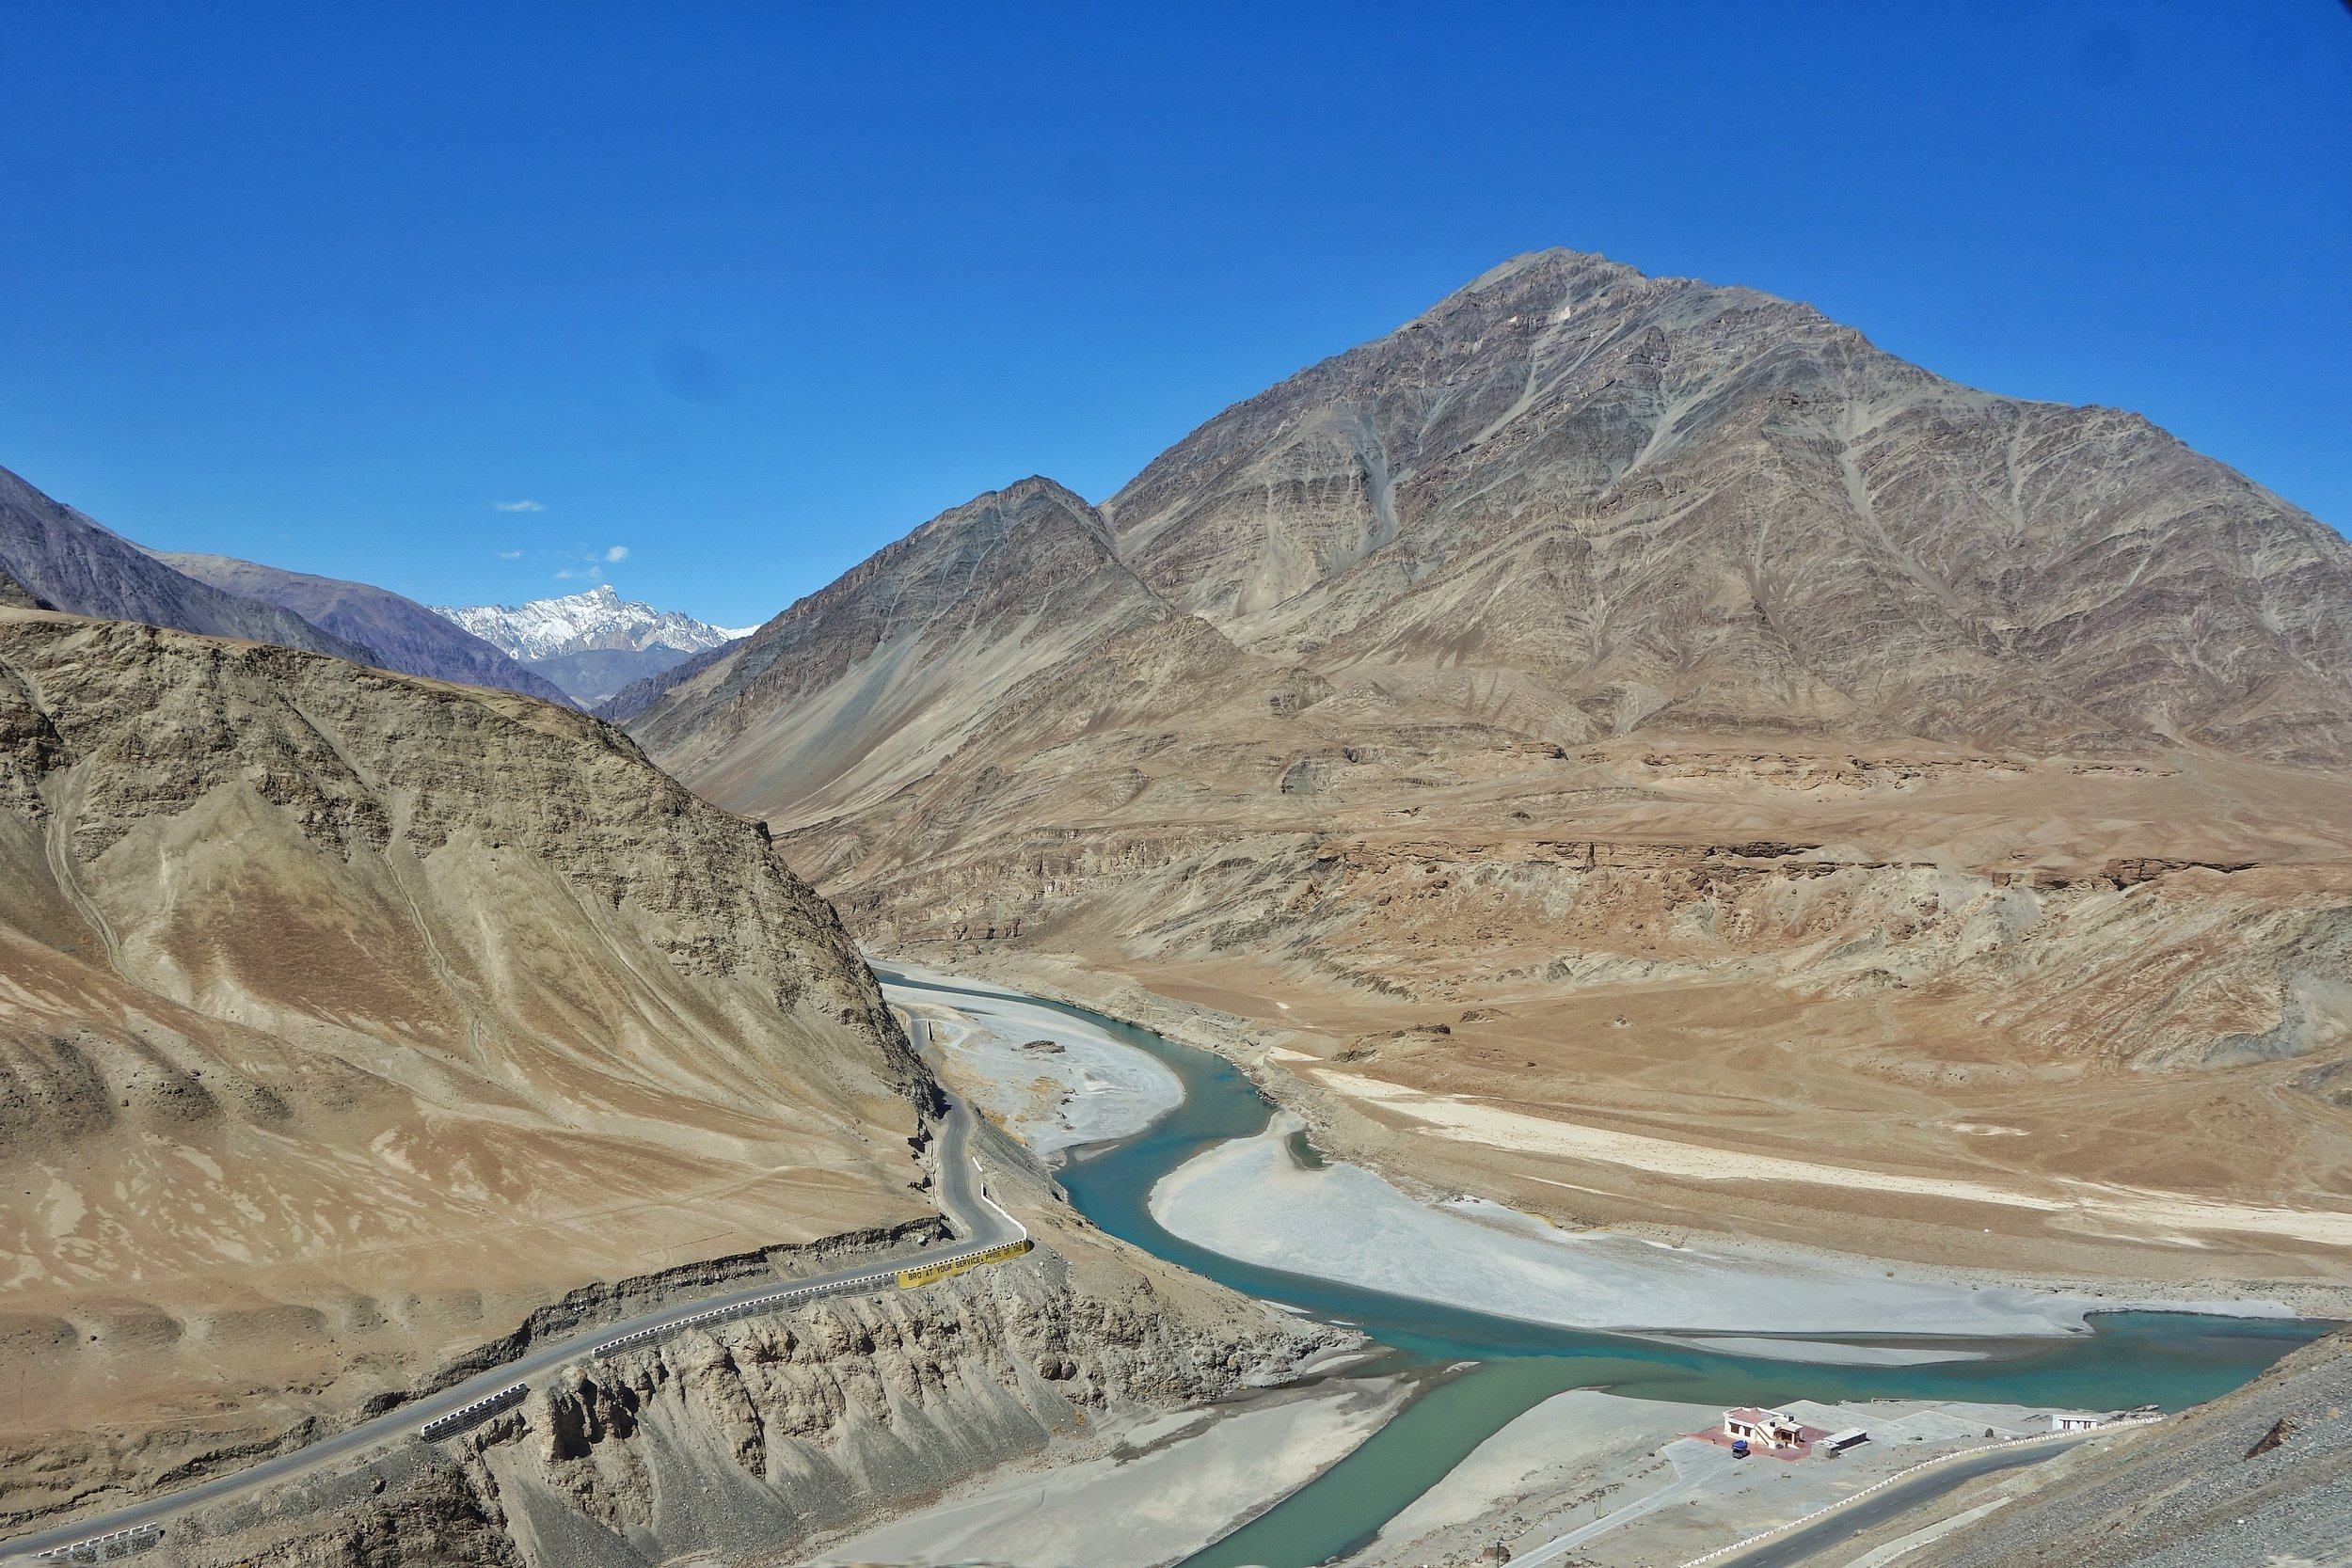 The Sangam or the Confluence of the Indus and Zanskar at Nimmoo